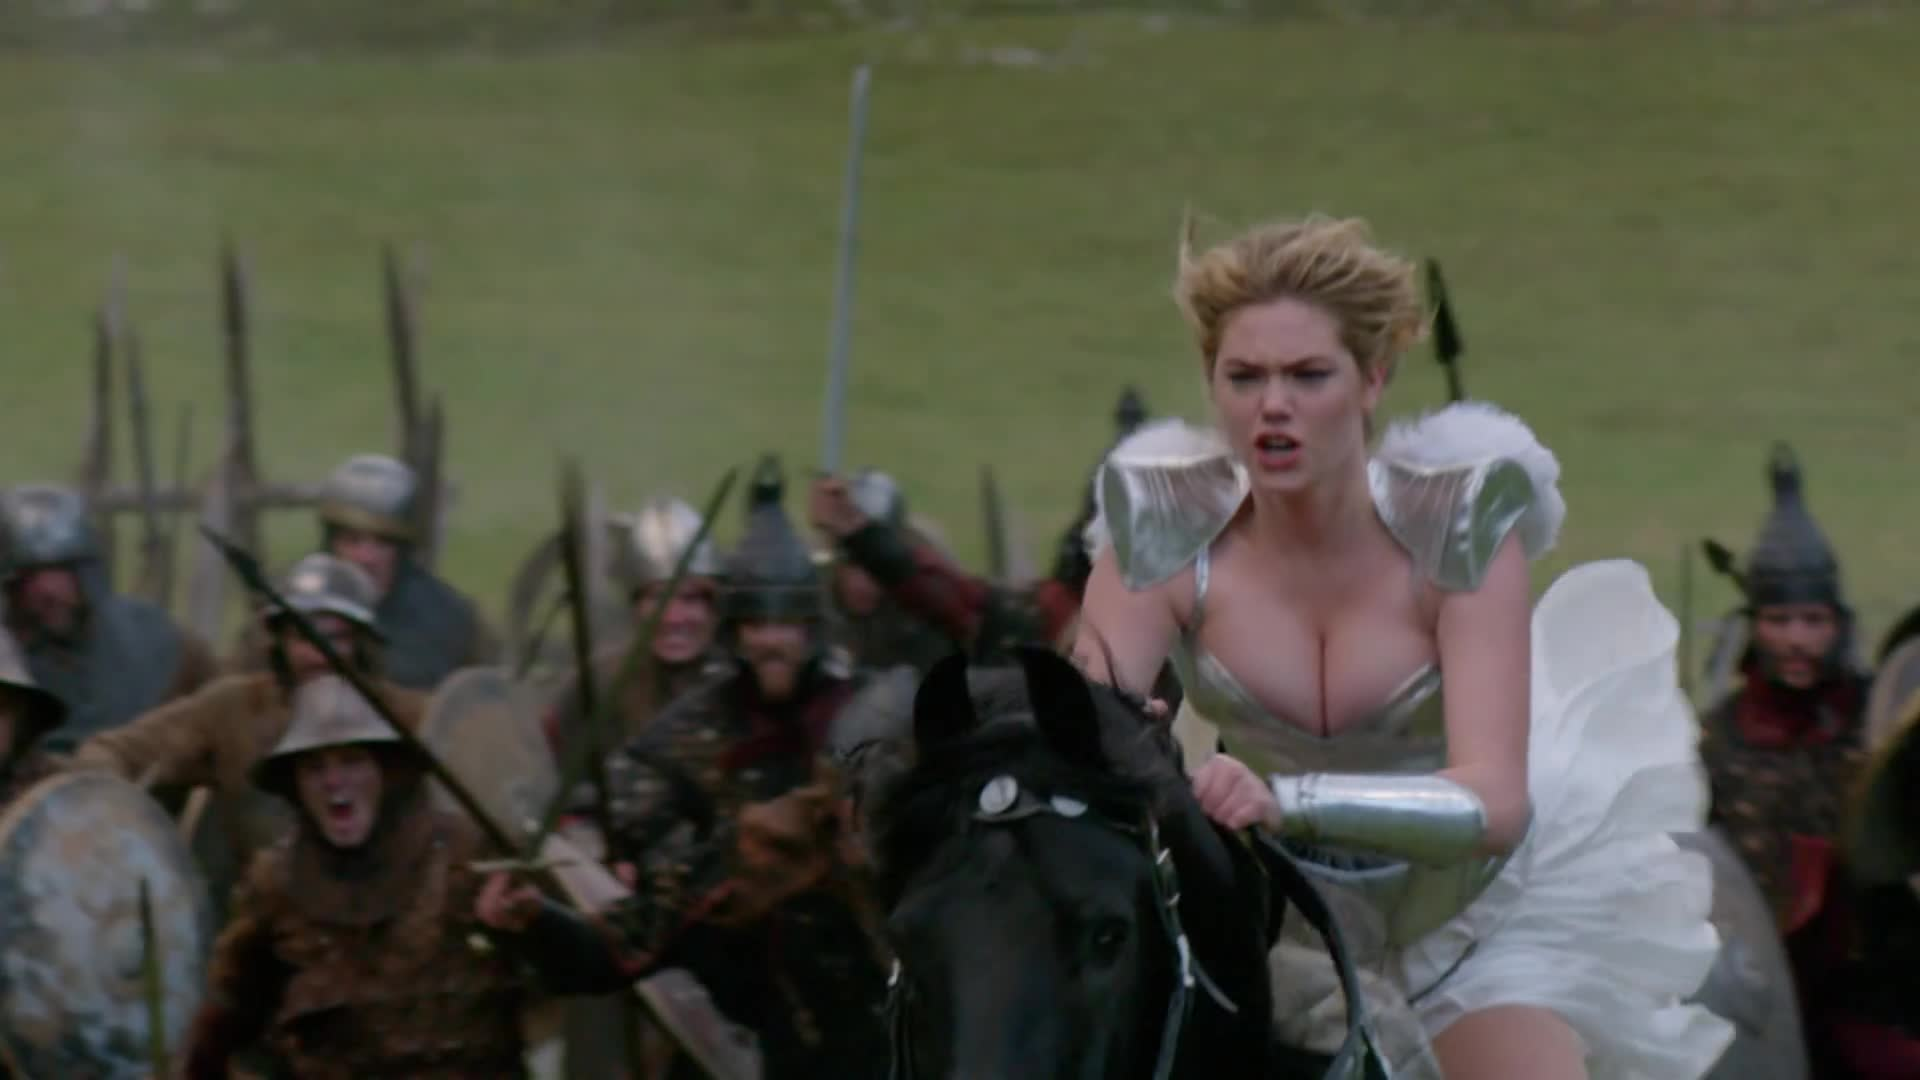 alliance, android game, archer queen, game of war, game of war ad, game of war commercial, game of war fire age, game of war fire age game, game of war fire age gameplay, game of war kate upton, game of war trailer, game of war: live action trailer, ios game, kate commercial, kate upton (film actor), live action commercial, machine zone, official trailer, strategy guide, trailer, Game of War: Live Action Trailer -